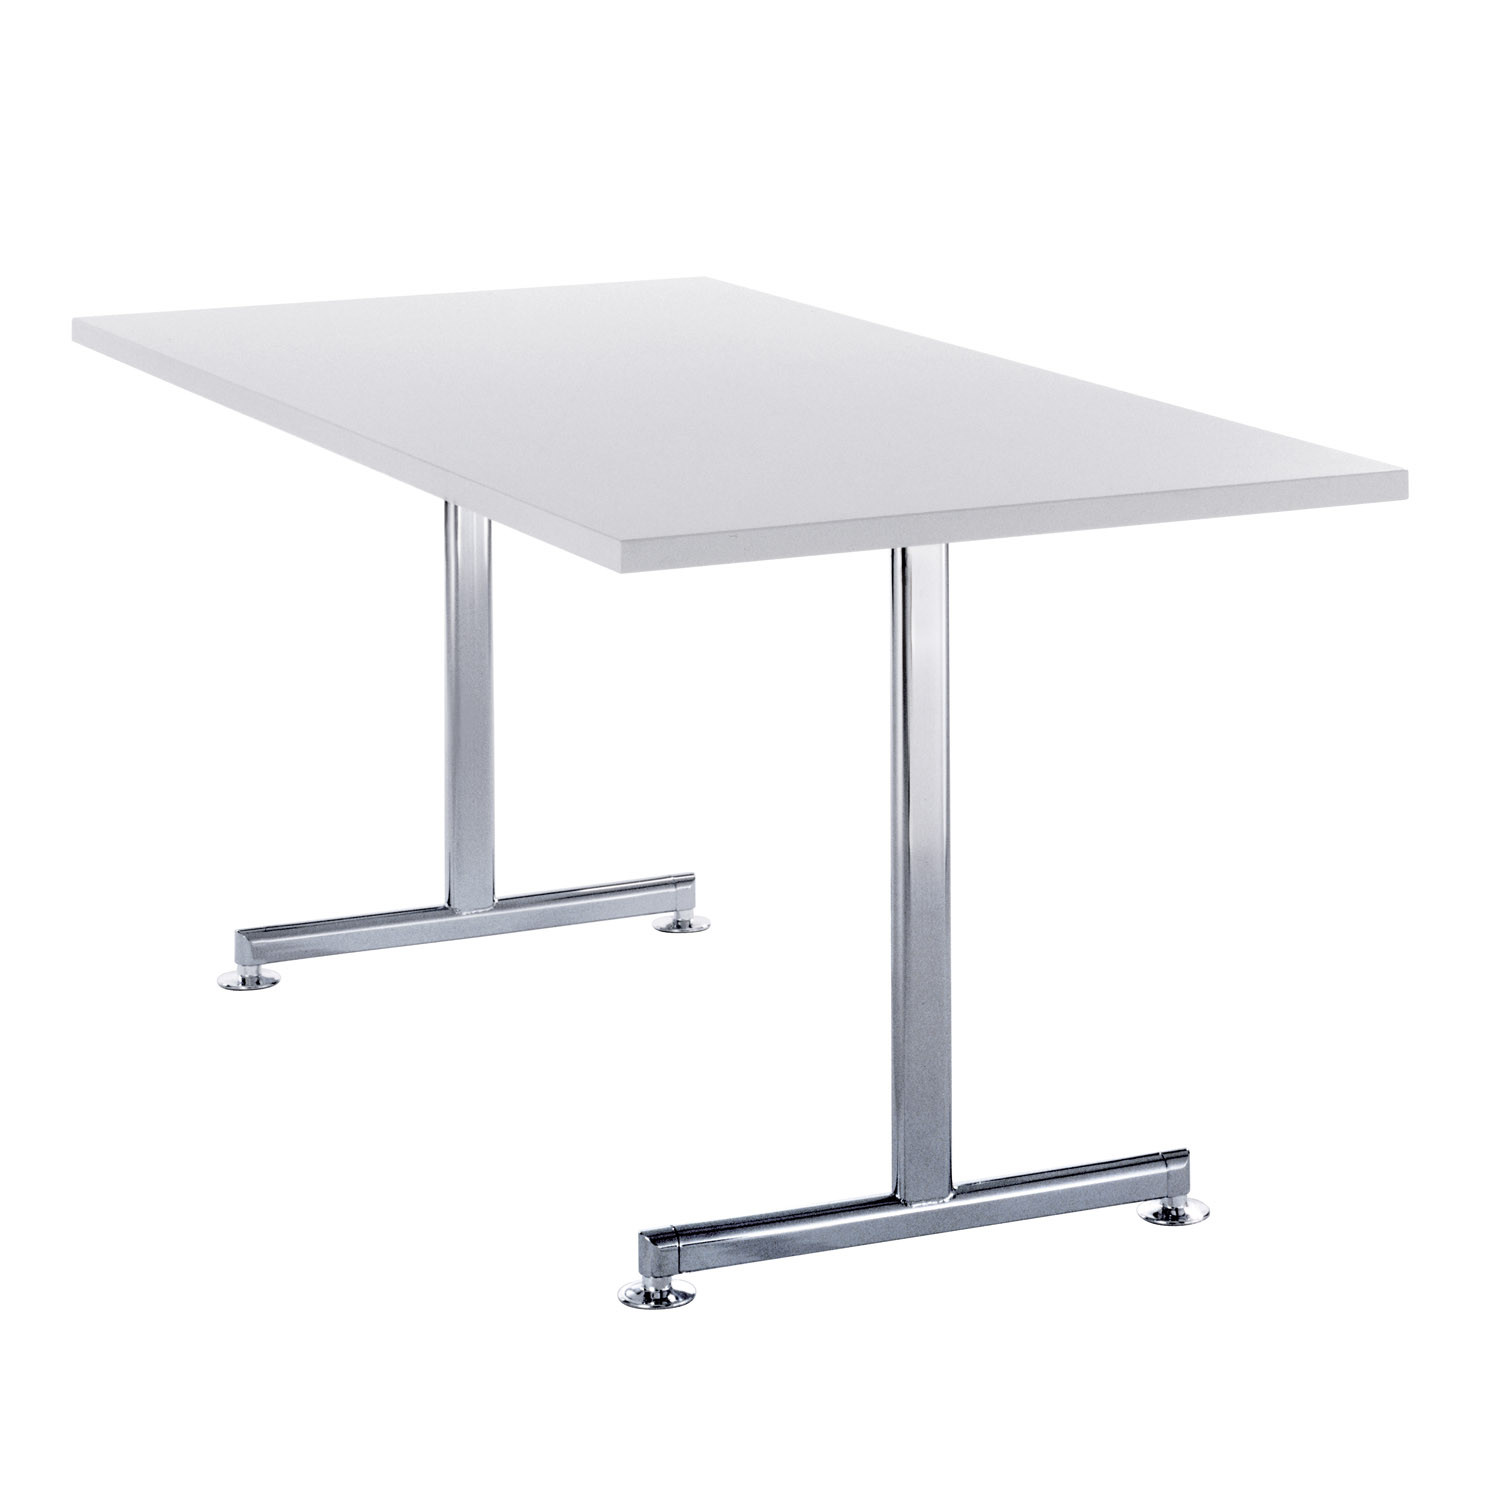 Torino Training Tables offer height adjustability